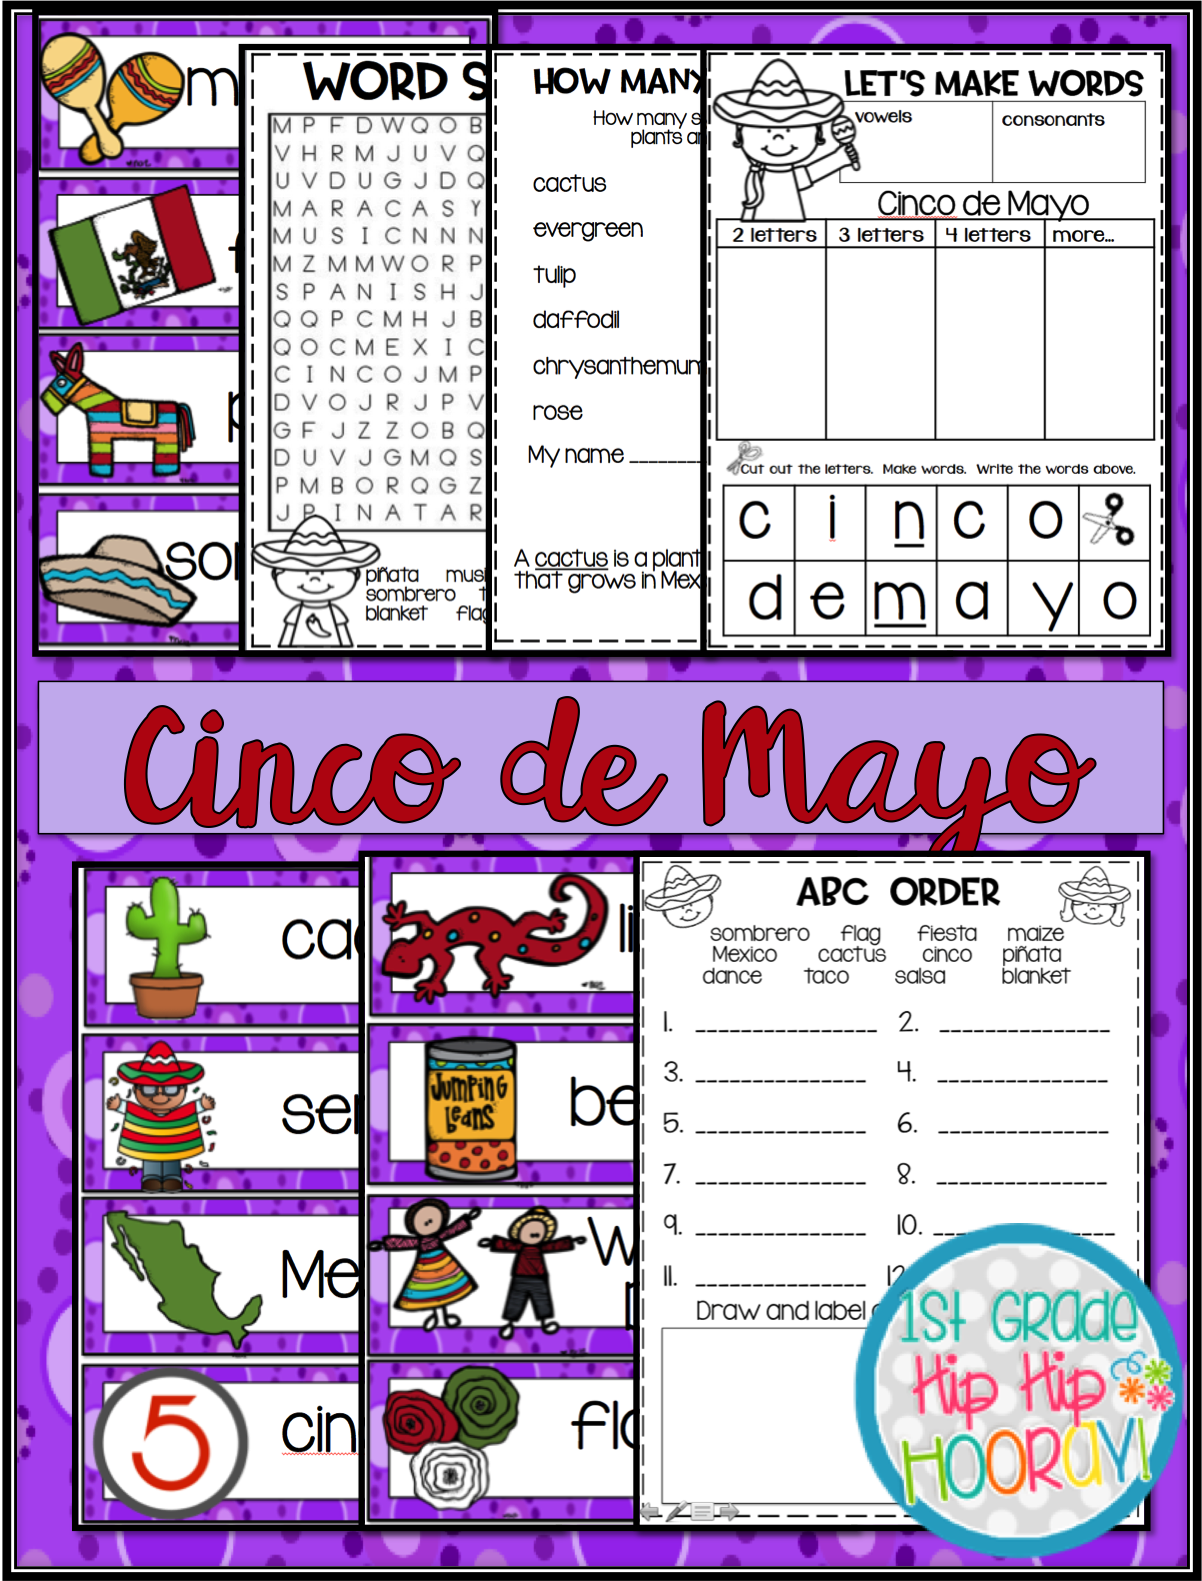 1st Grade Hip Hip Hooray Cinco De Mayo Per Pencil Or